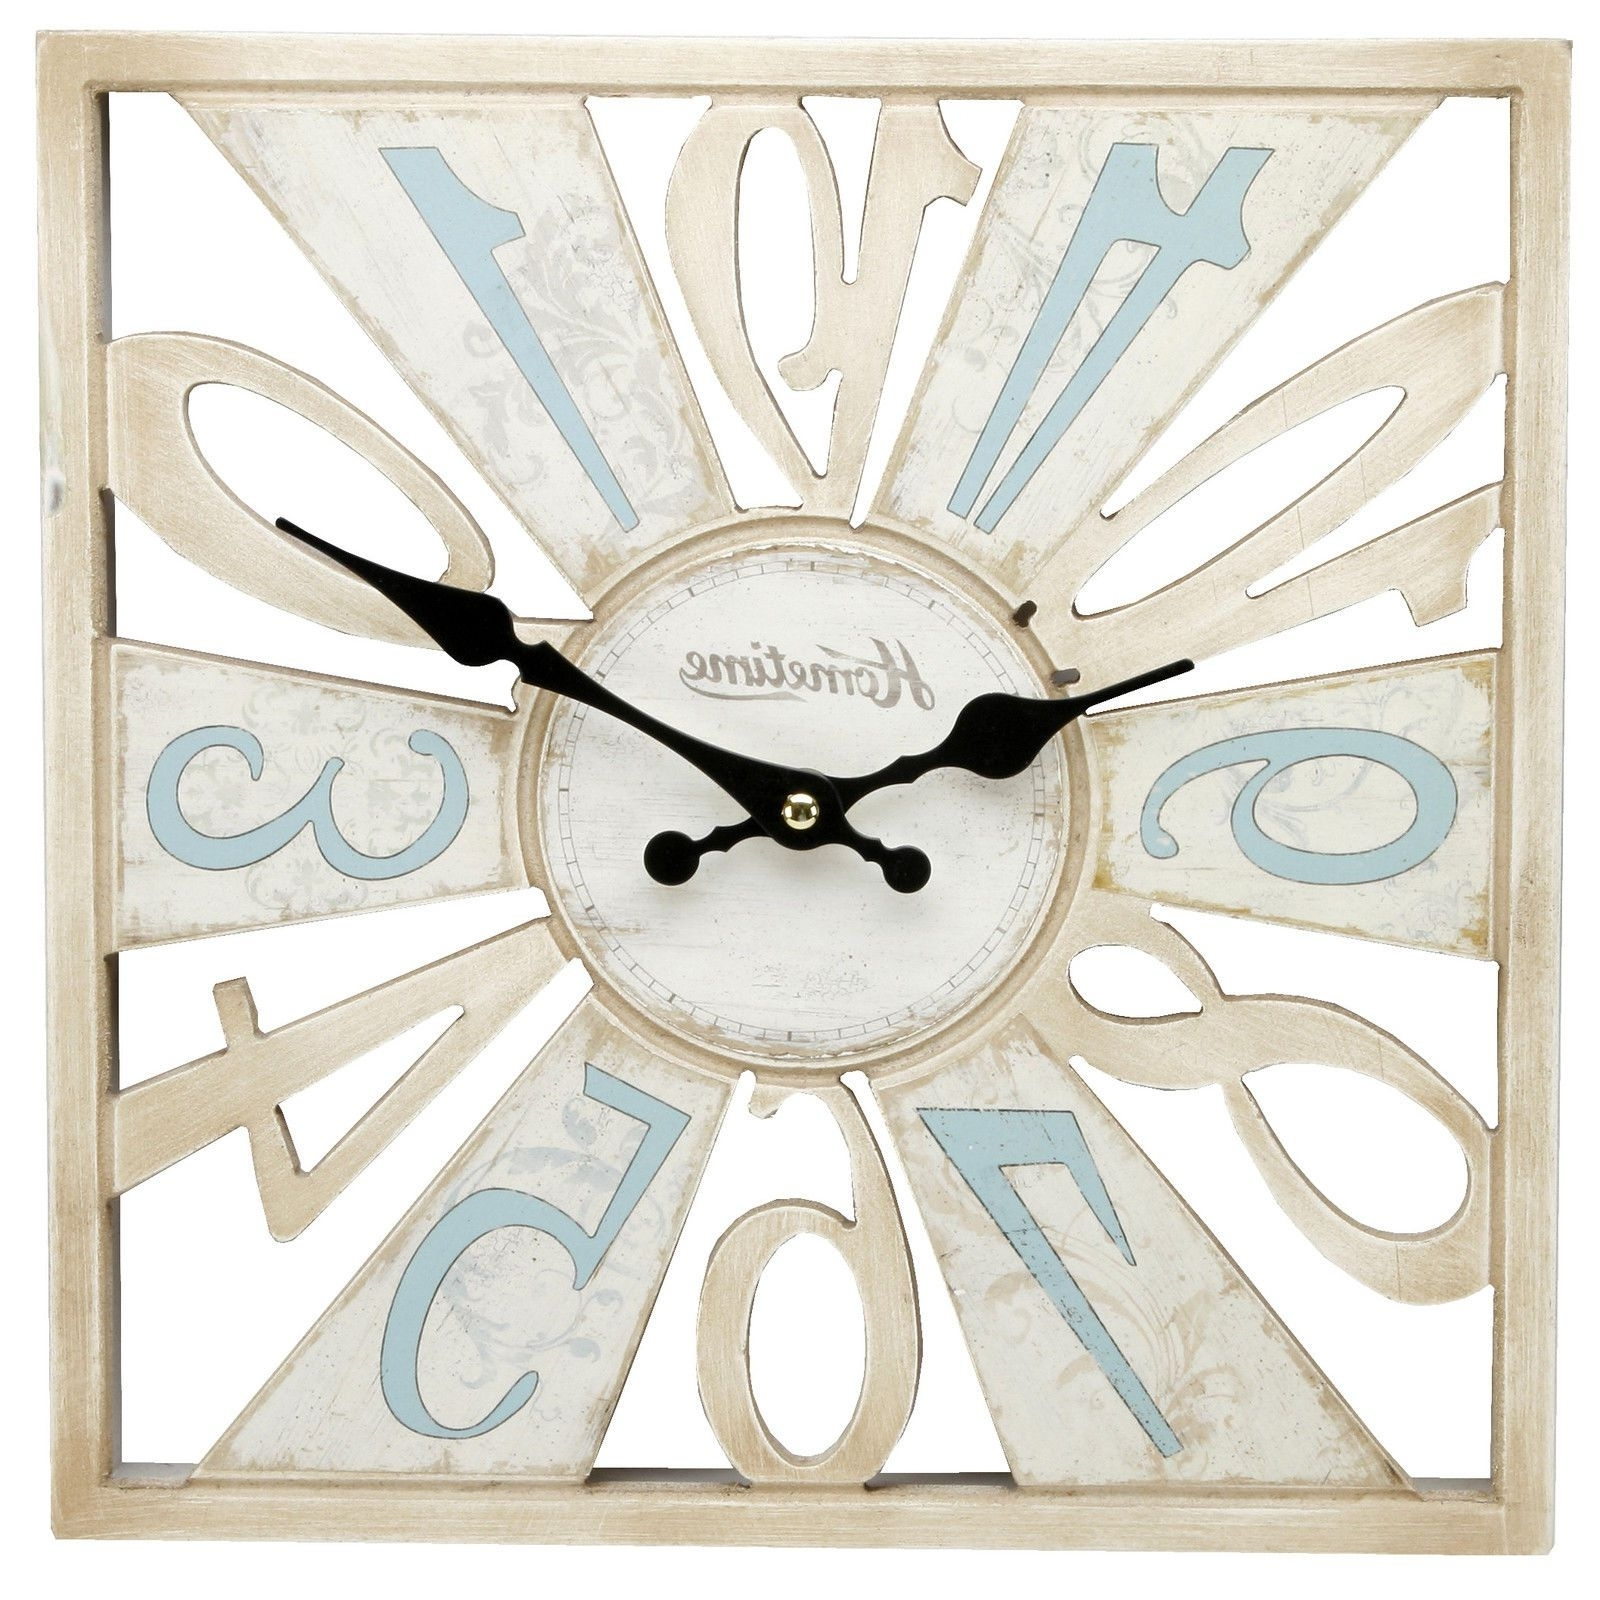 Newest Cut Out Wooden Wall Clock Duck Egg Blue & Cream Shabby Chic Wall With Duck Egg Blue Wall Art (View 4 of 15)